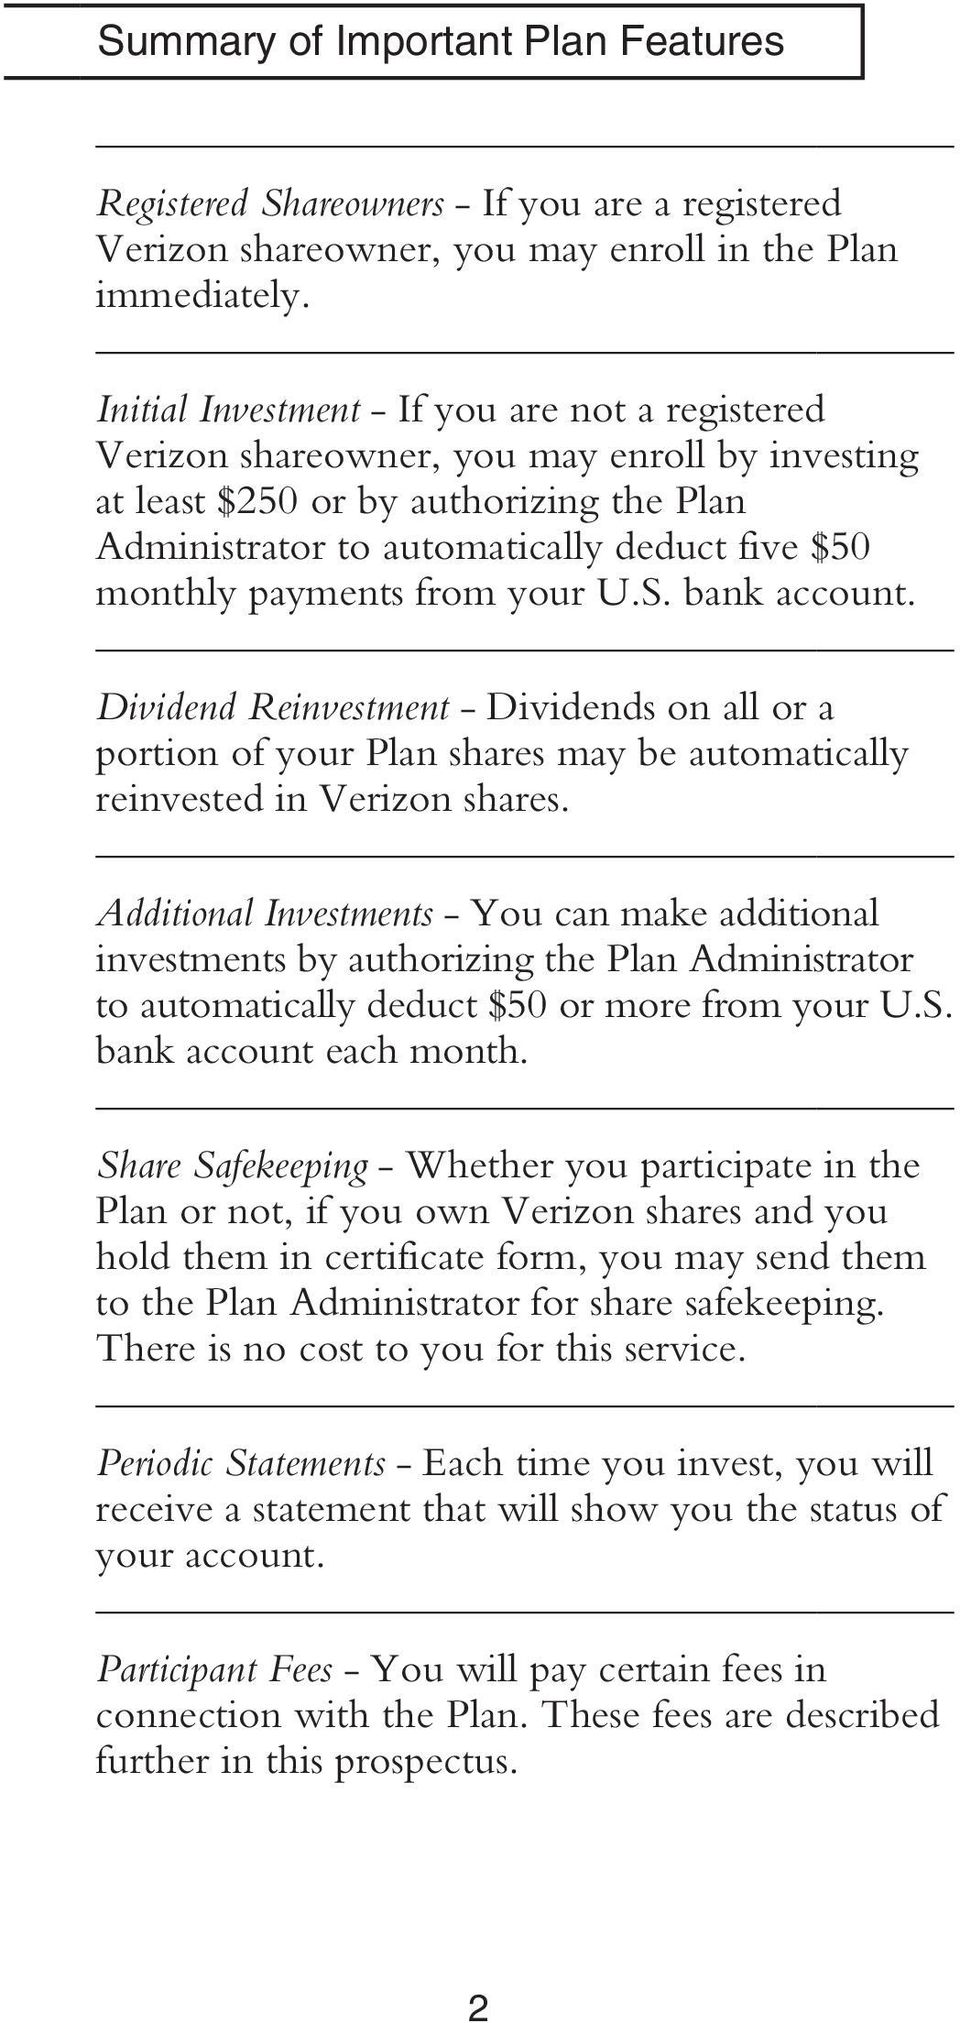 payments from your U.S. bank account. Dividend Reinvestment - Dividends on all or a portion of your Plan shares may be automatically reinvested in Verizon shares.